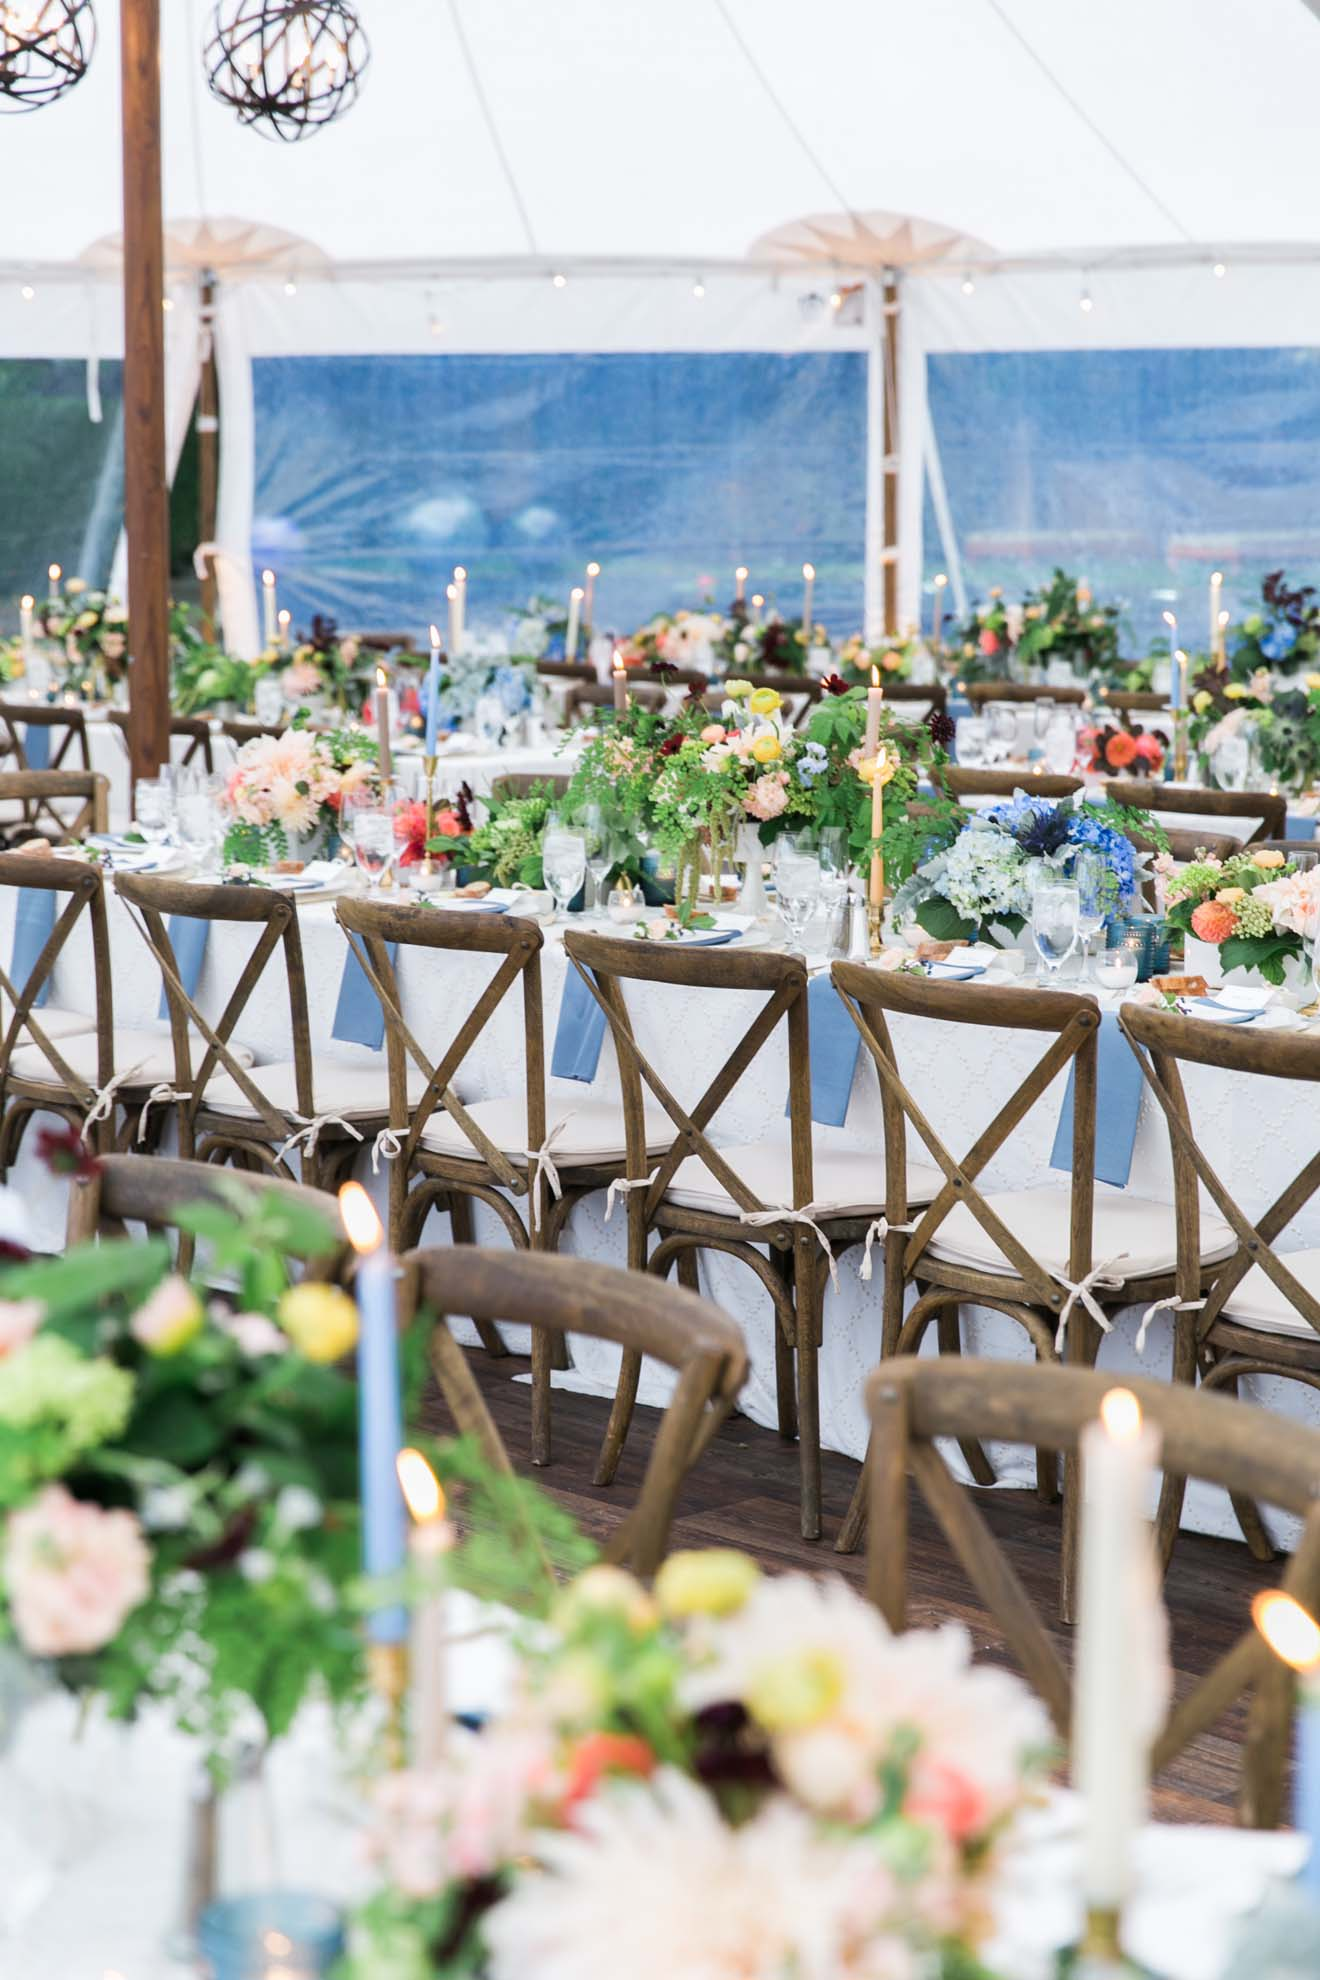 Tent wedding with long tables and vineyard chairs, orange and blue centerpieces at Pacific Northwest wedding designed by Flora Nova Design